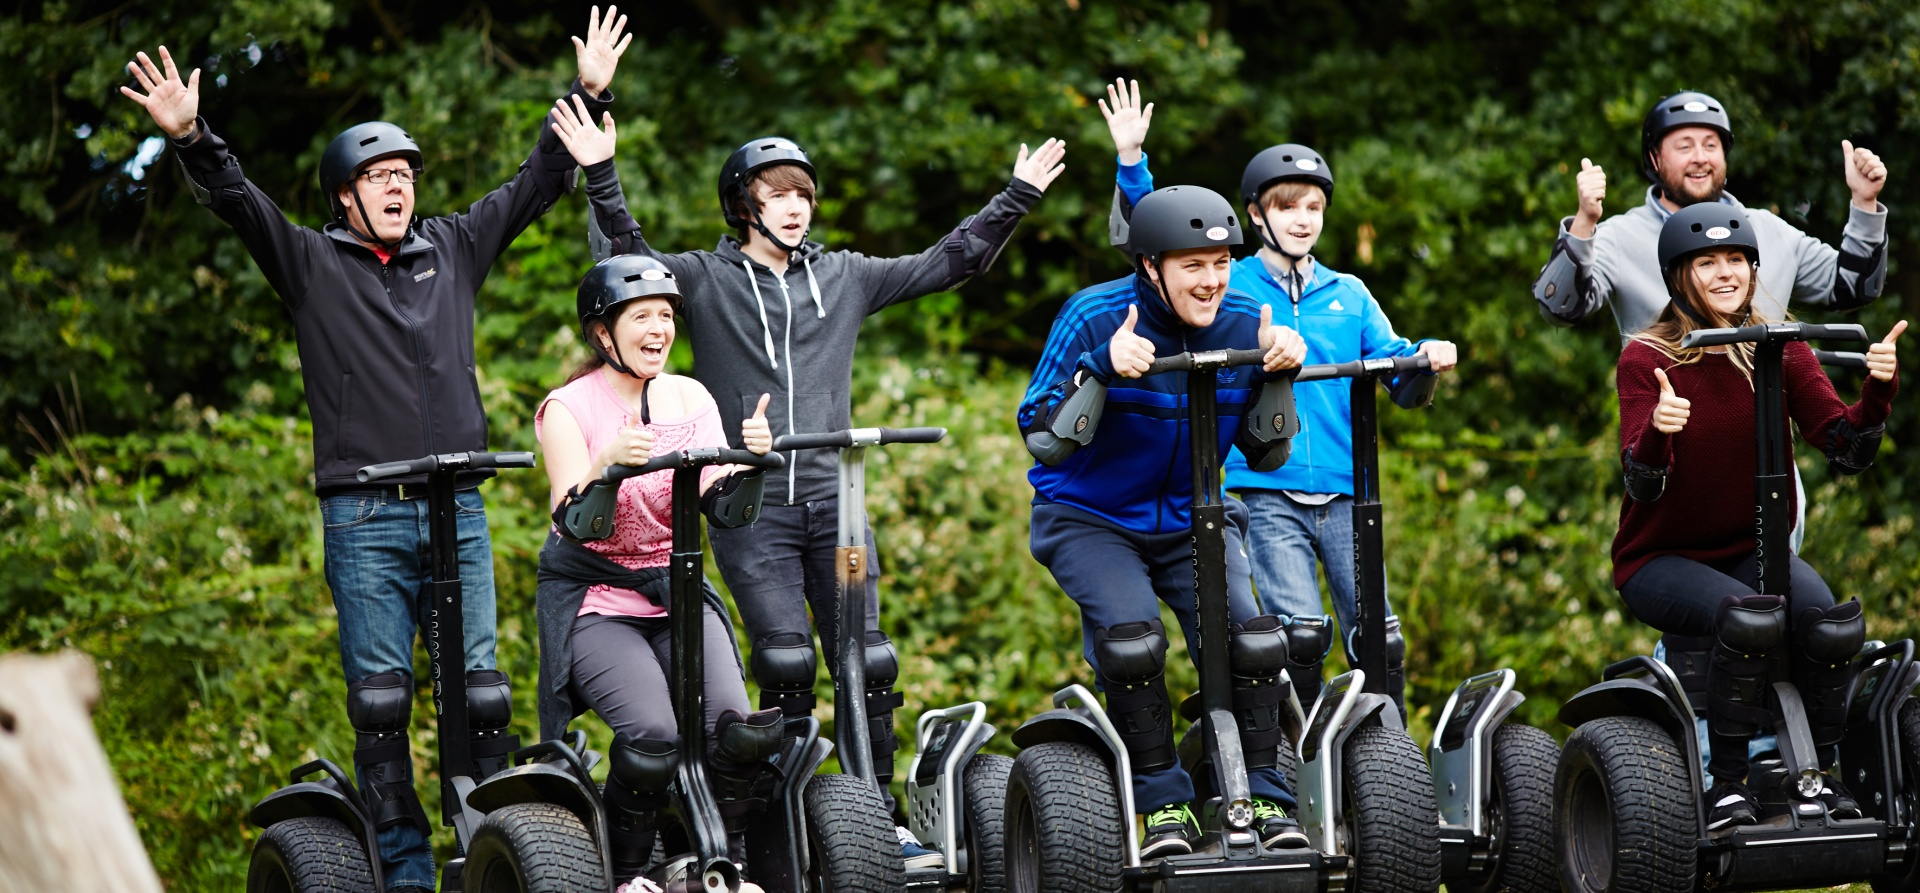 One Hour Segway Adventure For 2-5